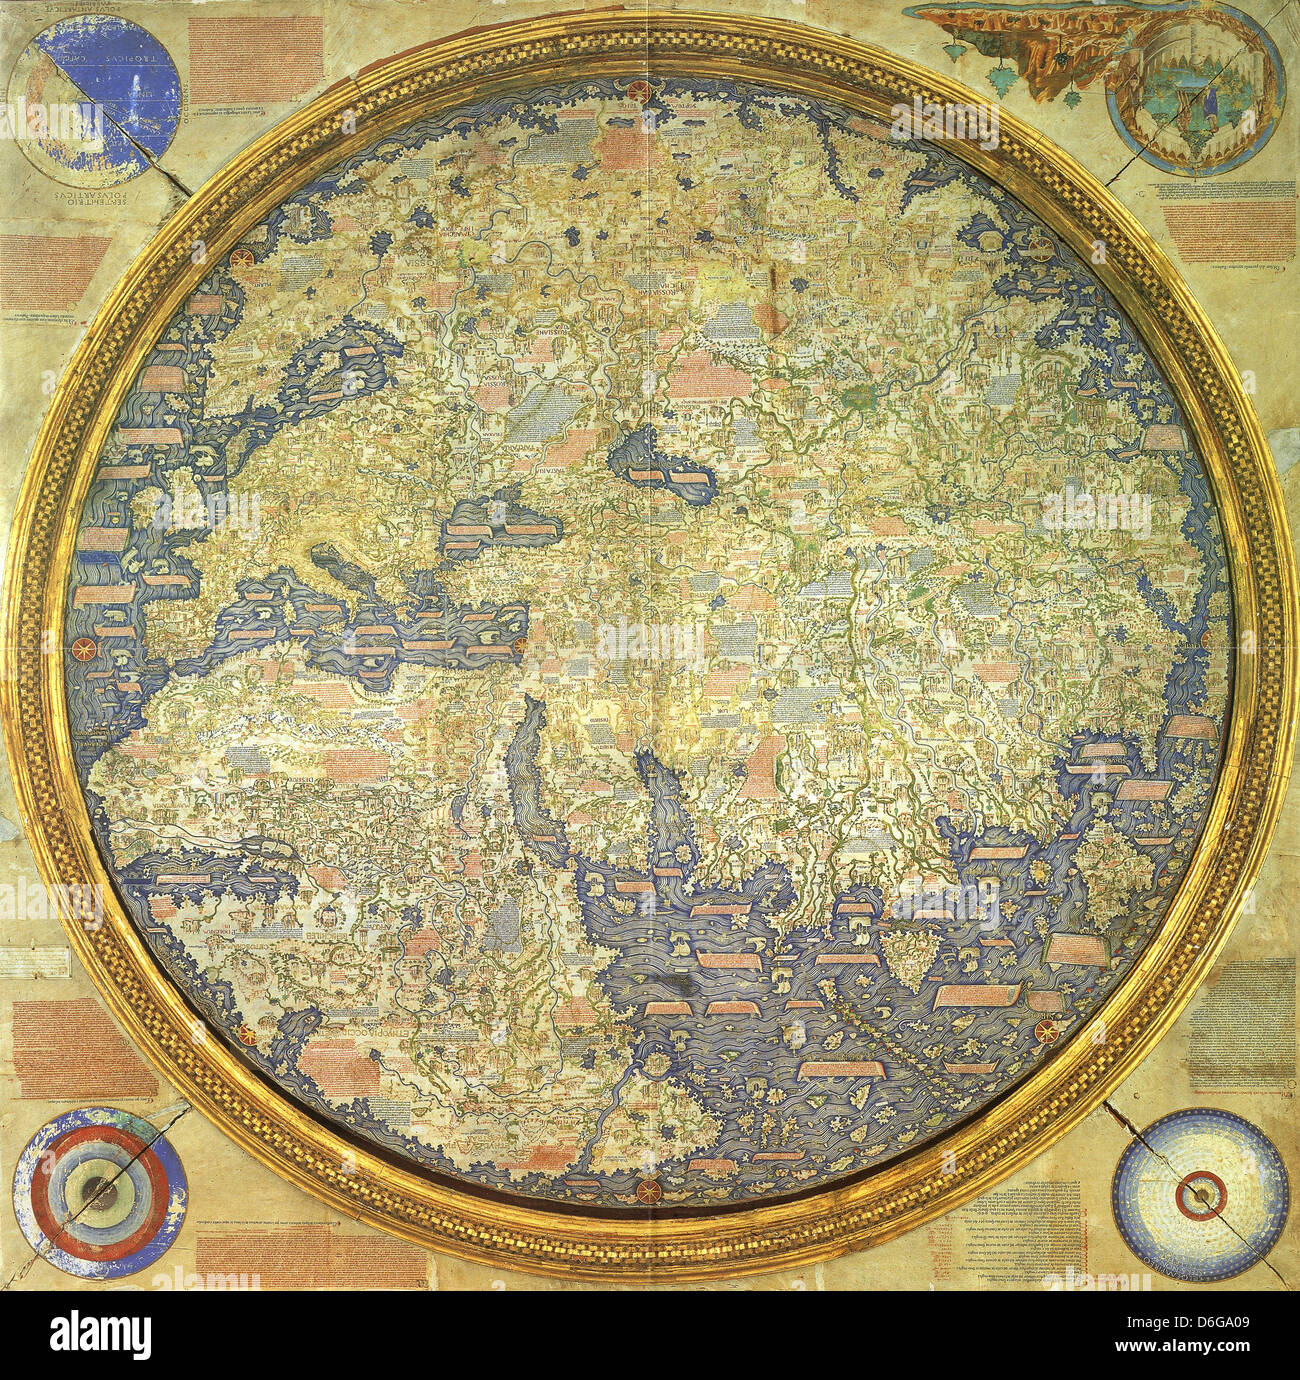 FRA MAURO  MAP  drawn in 1450 by Venetian monk Fra (Brother) Mauro - Stock Image